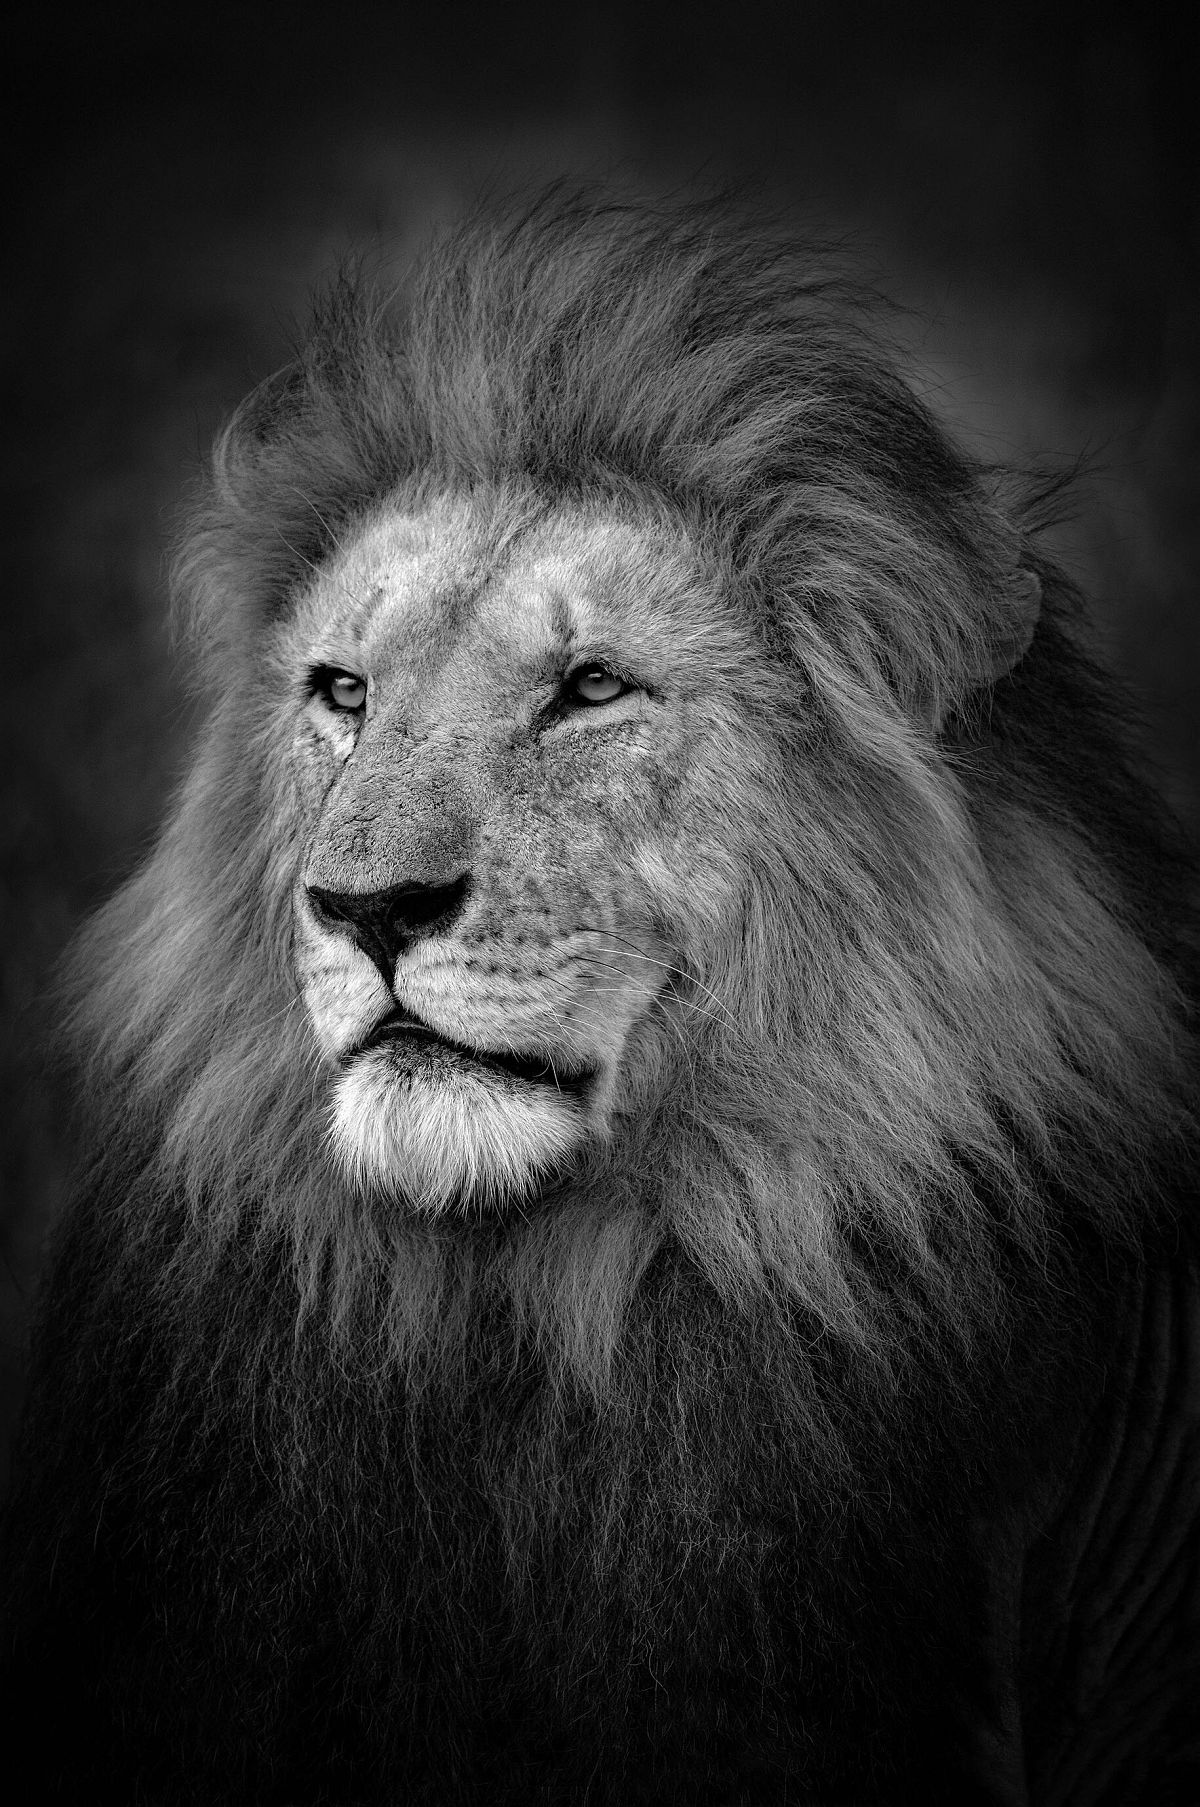 Björn Persson, The King, Masai Mara, Kenya, 2017 27.5 x 41 inches - (other sizes & pricing available) Pigment print from a limited edition of 10 $2,500 USD (plus tax & framing) Robert Klein Gallery, Boston